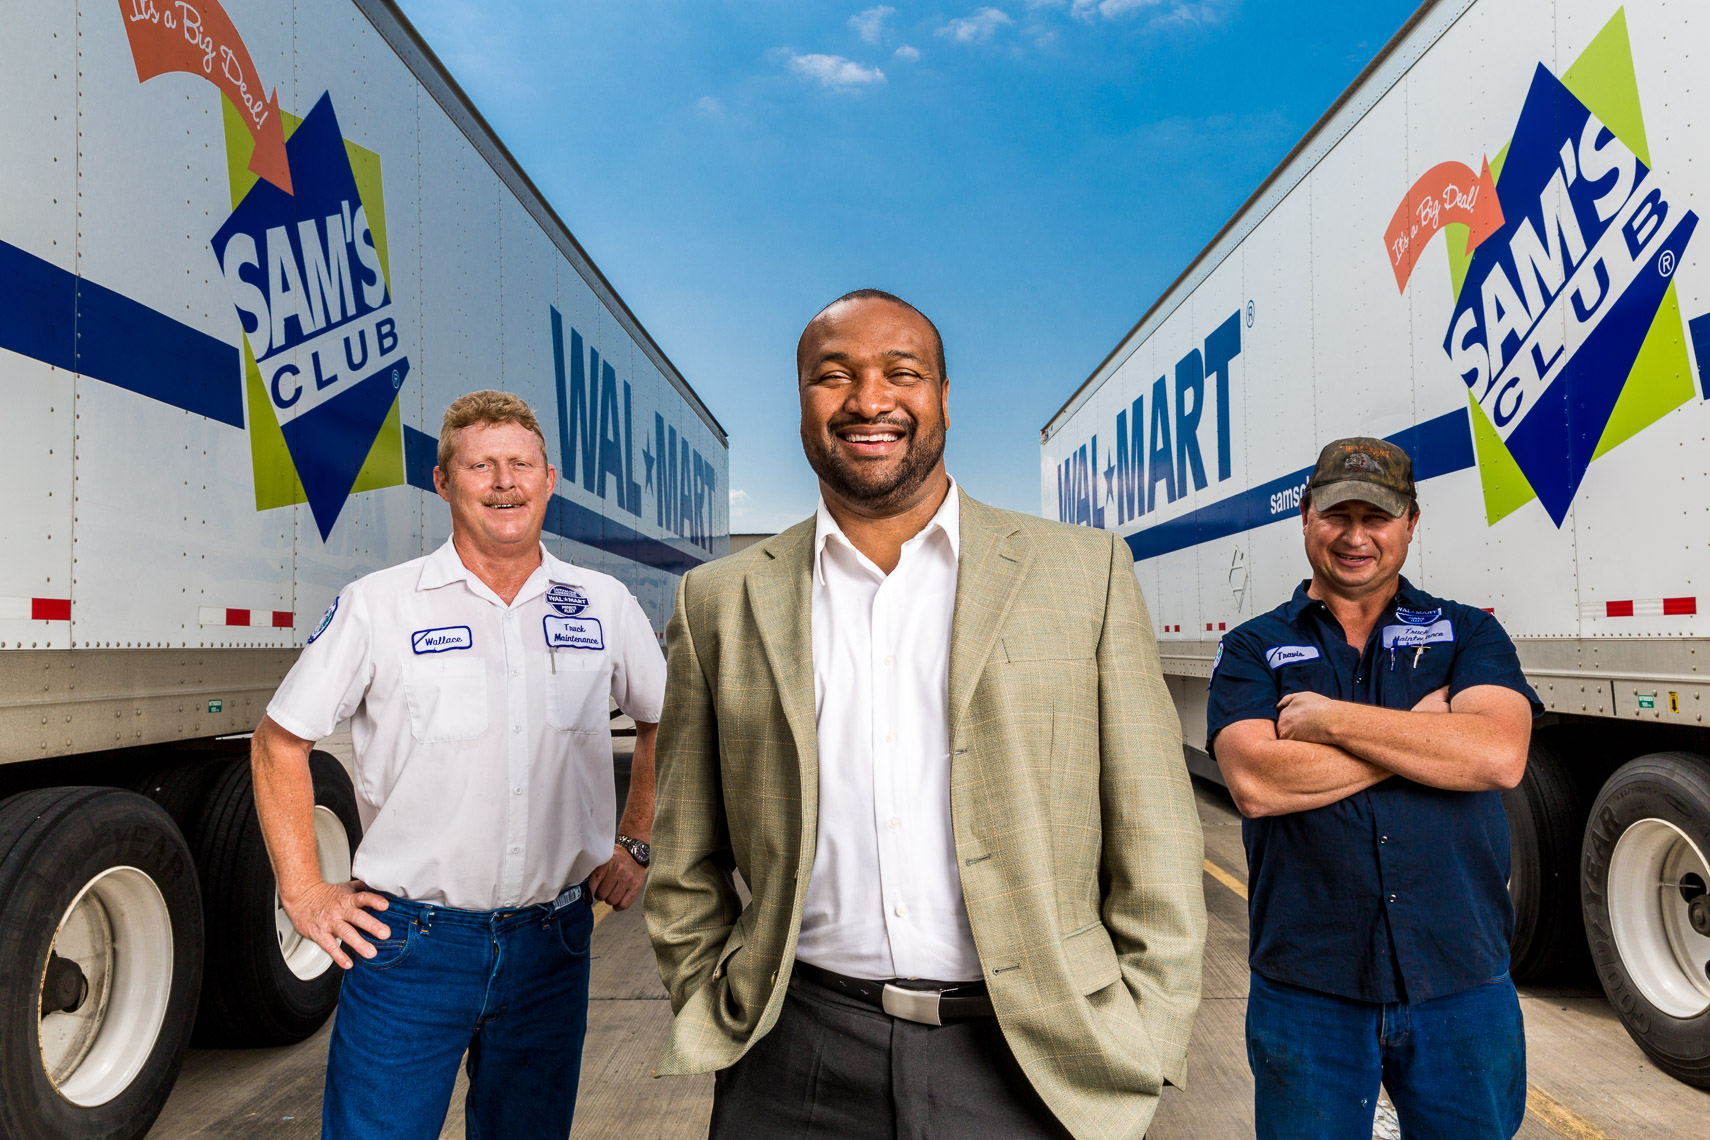 Corporate portrait for Walmart